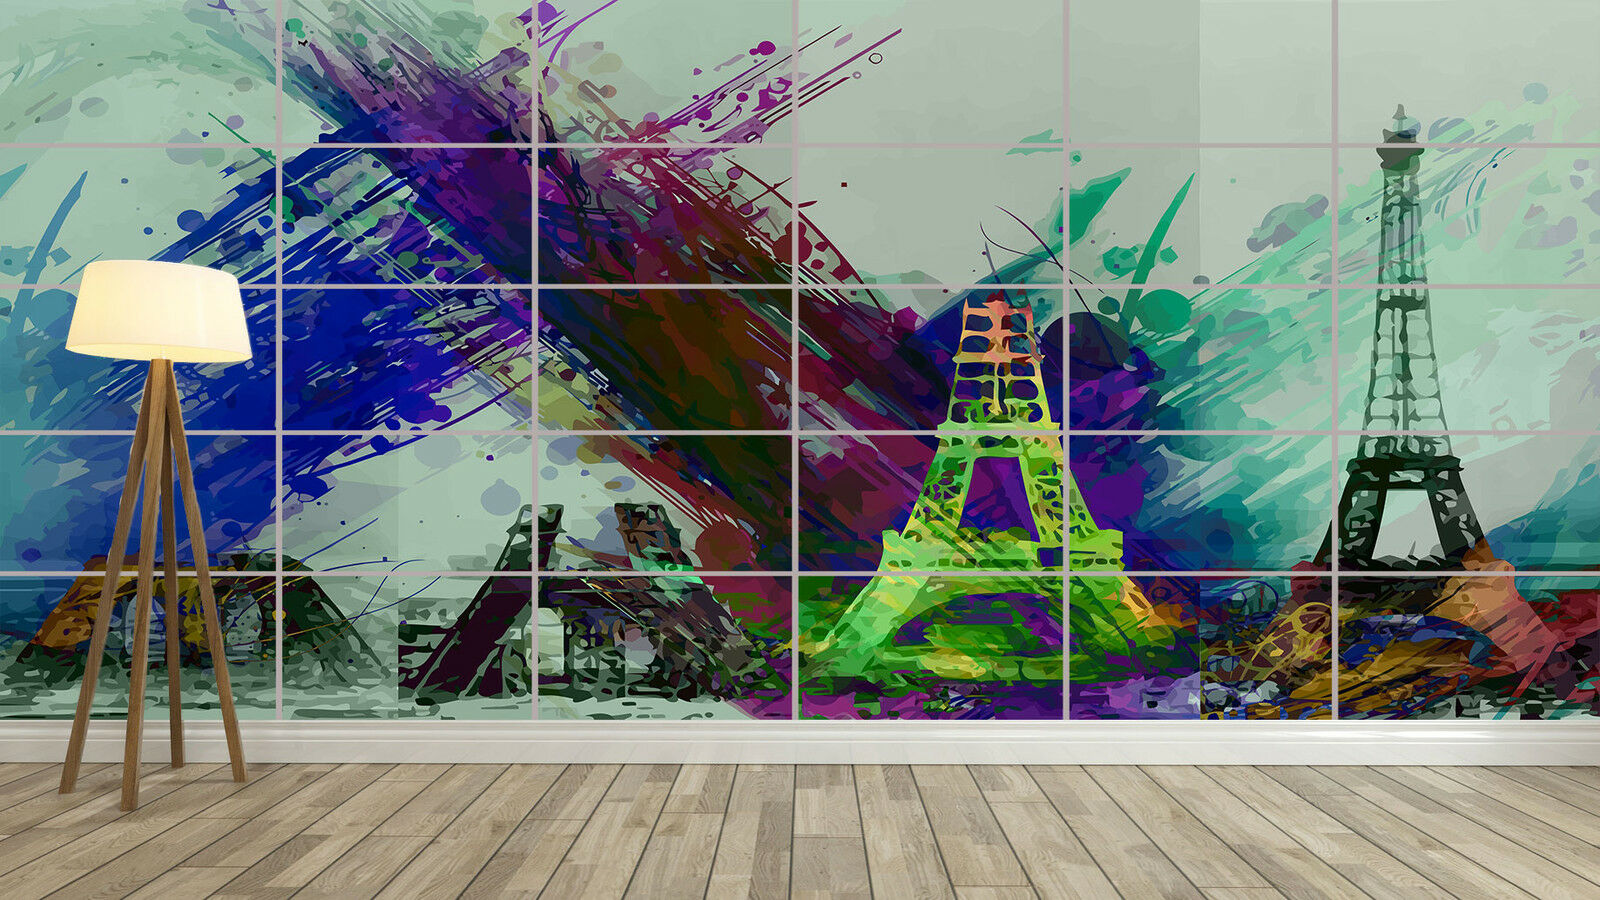 El ultimo 2018 PARIS TOUR EIFFEL TOWER ABSTRACT ABSTRAIT Giant Poster Poster Poster Home Deco Salon 252cmX150  Más asequible